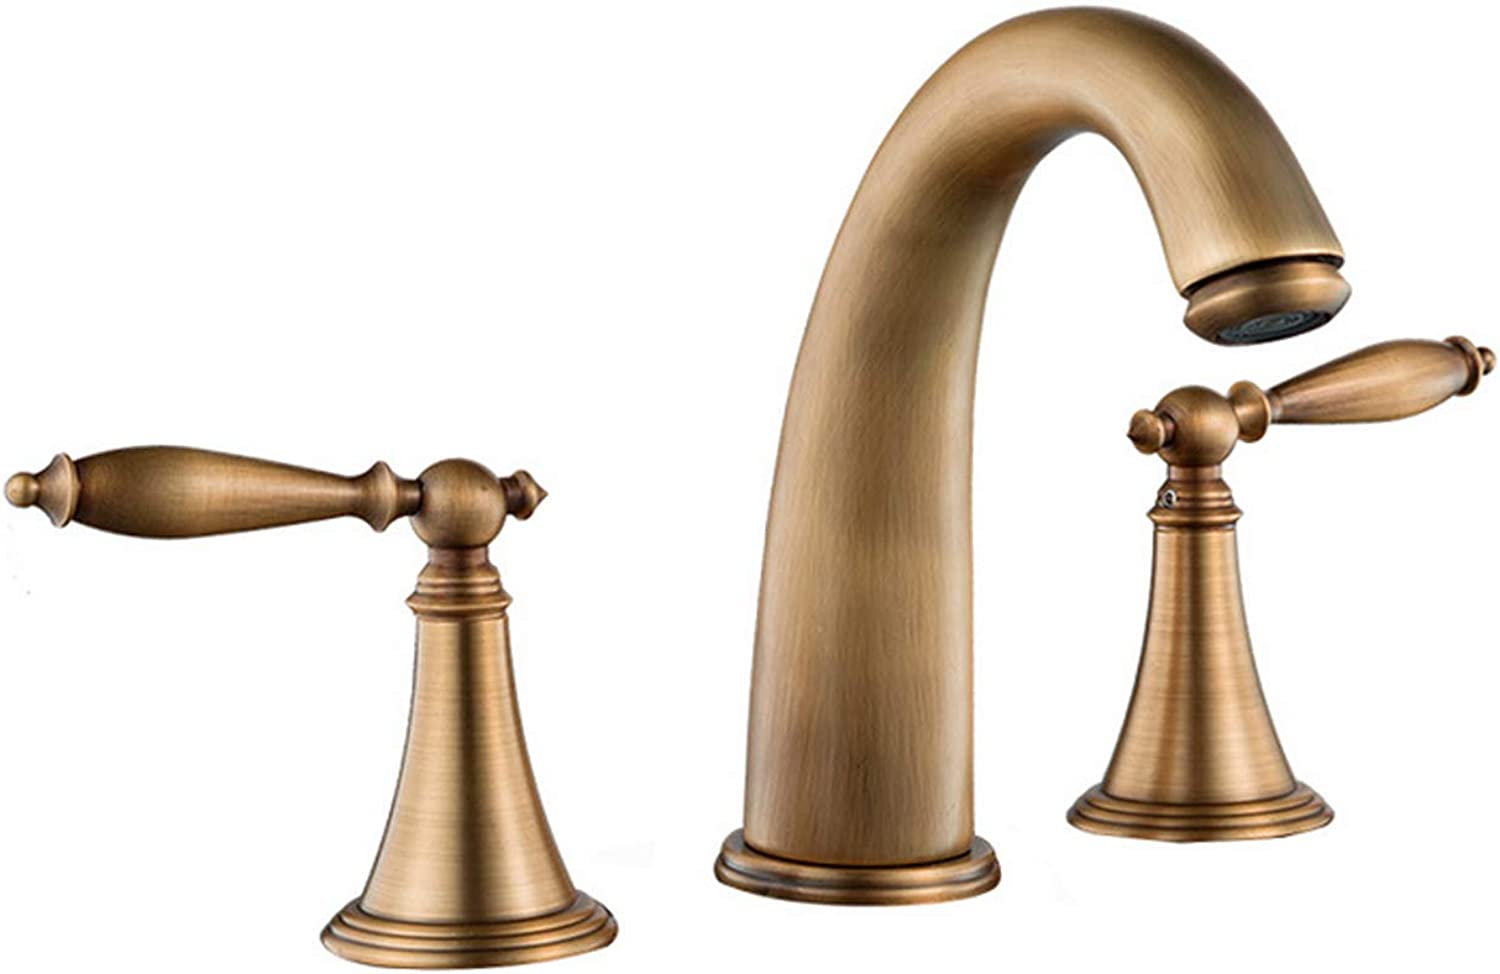 Bathroom Faucet Basin Curved Three-Piece Copper Full Double Handle Hot and Cold Adjustment Sink Water-tap,gold